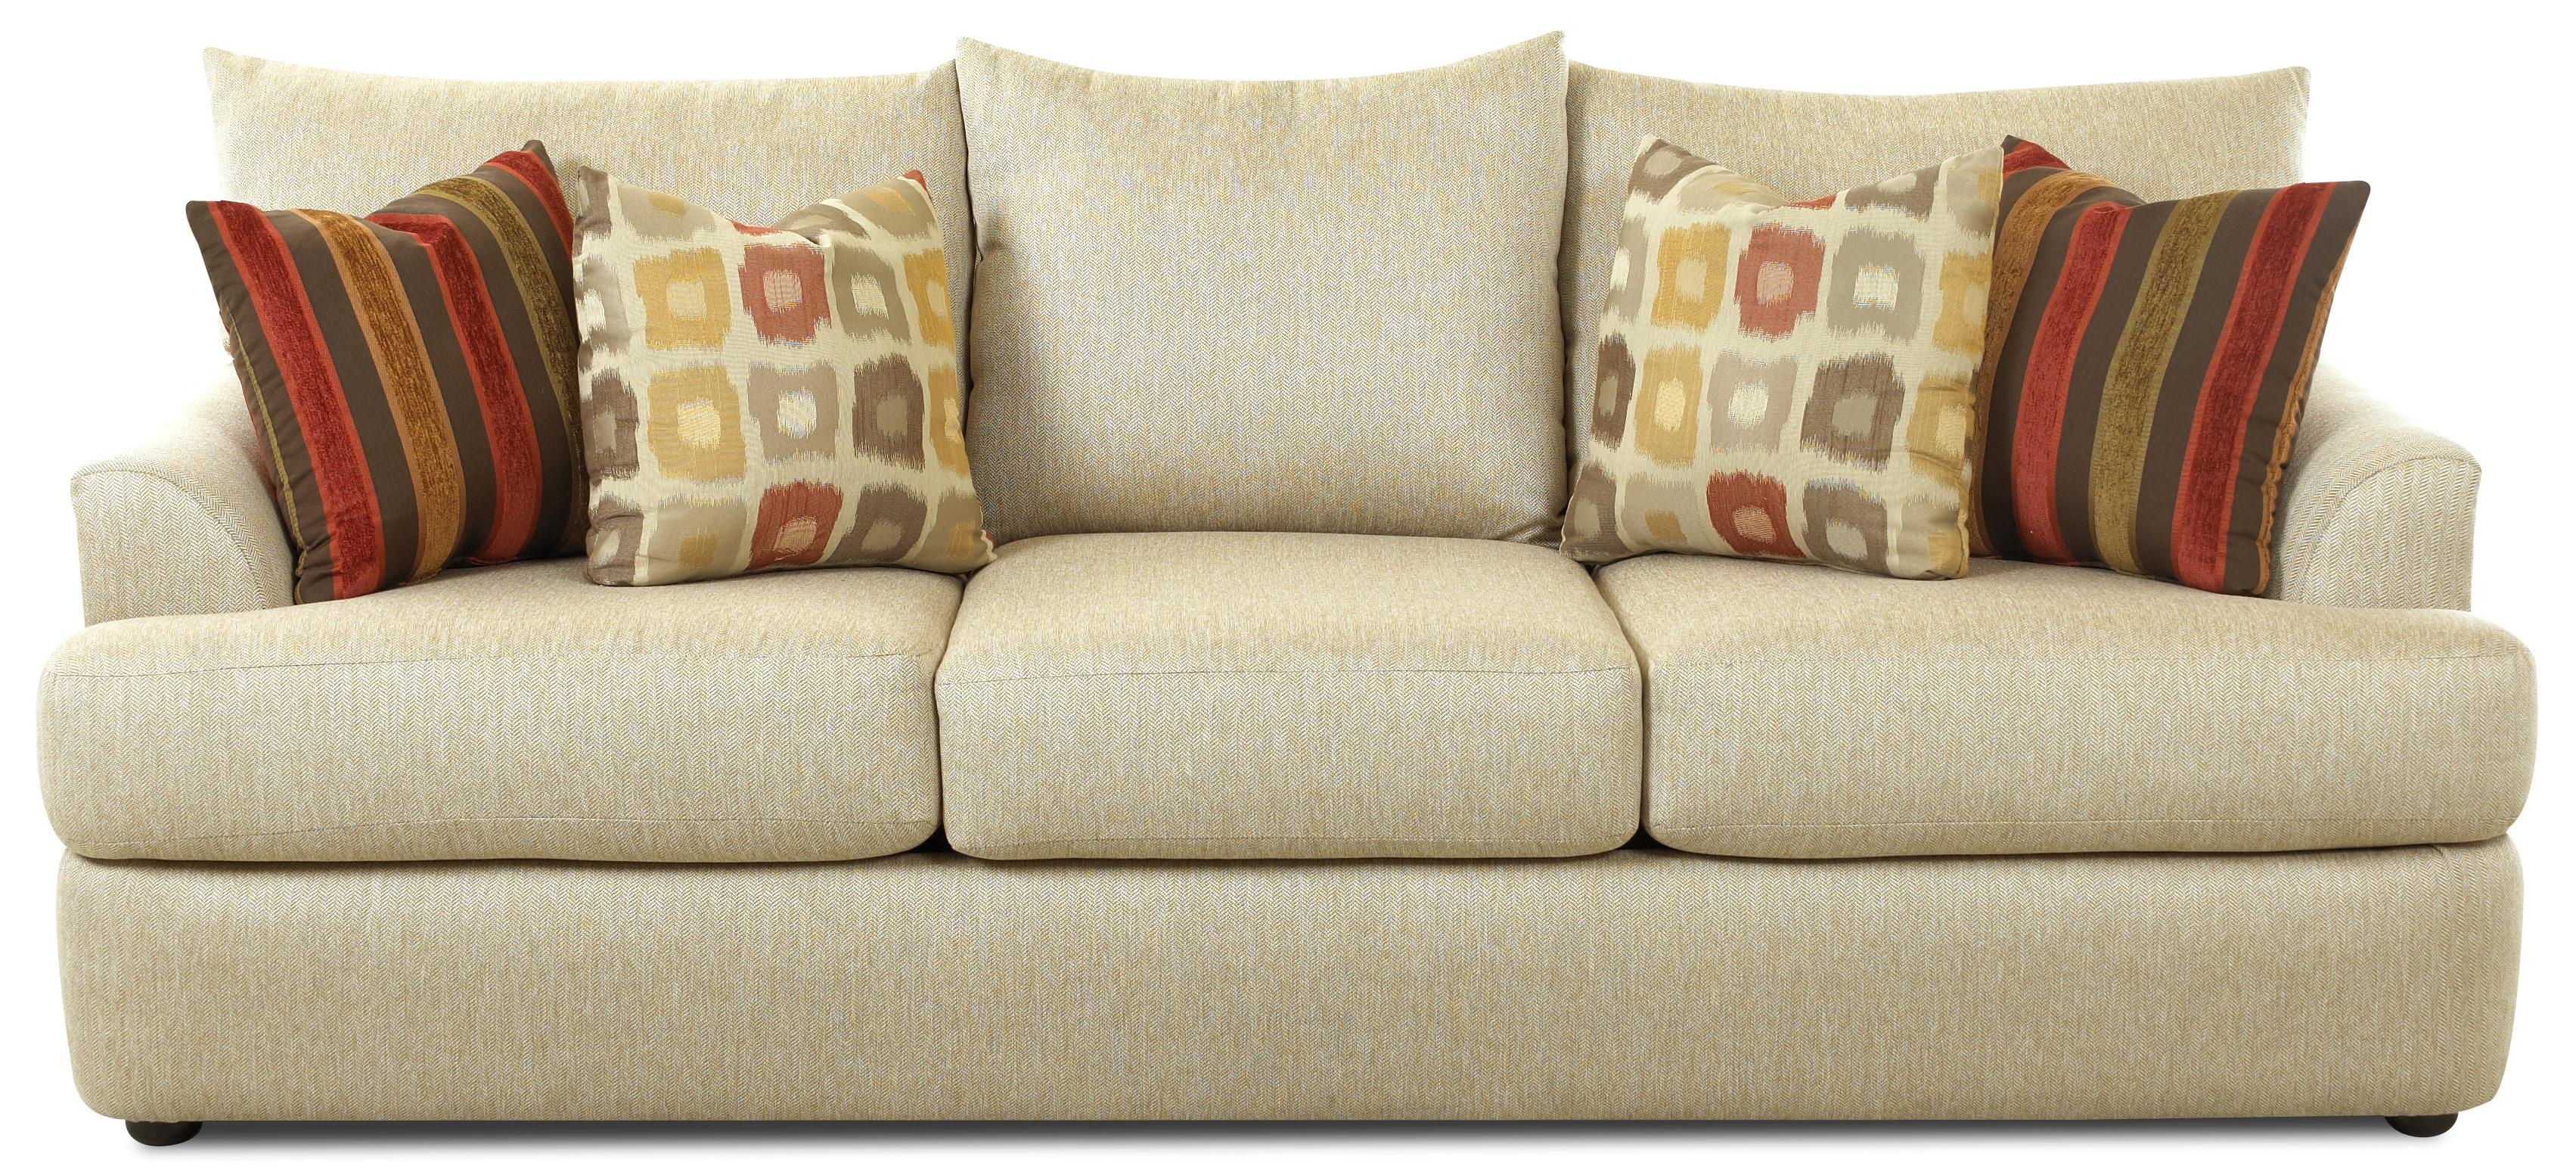 Attrayant Three Over Three Sofa With Accent Pillows